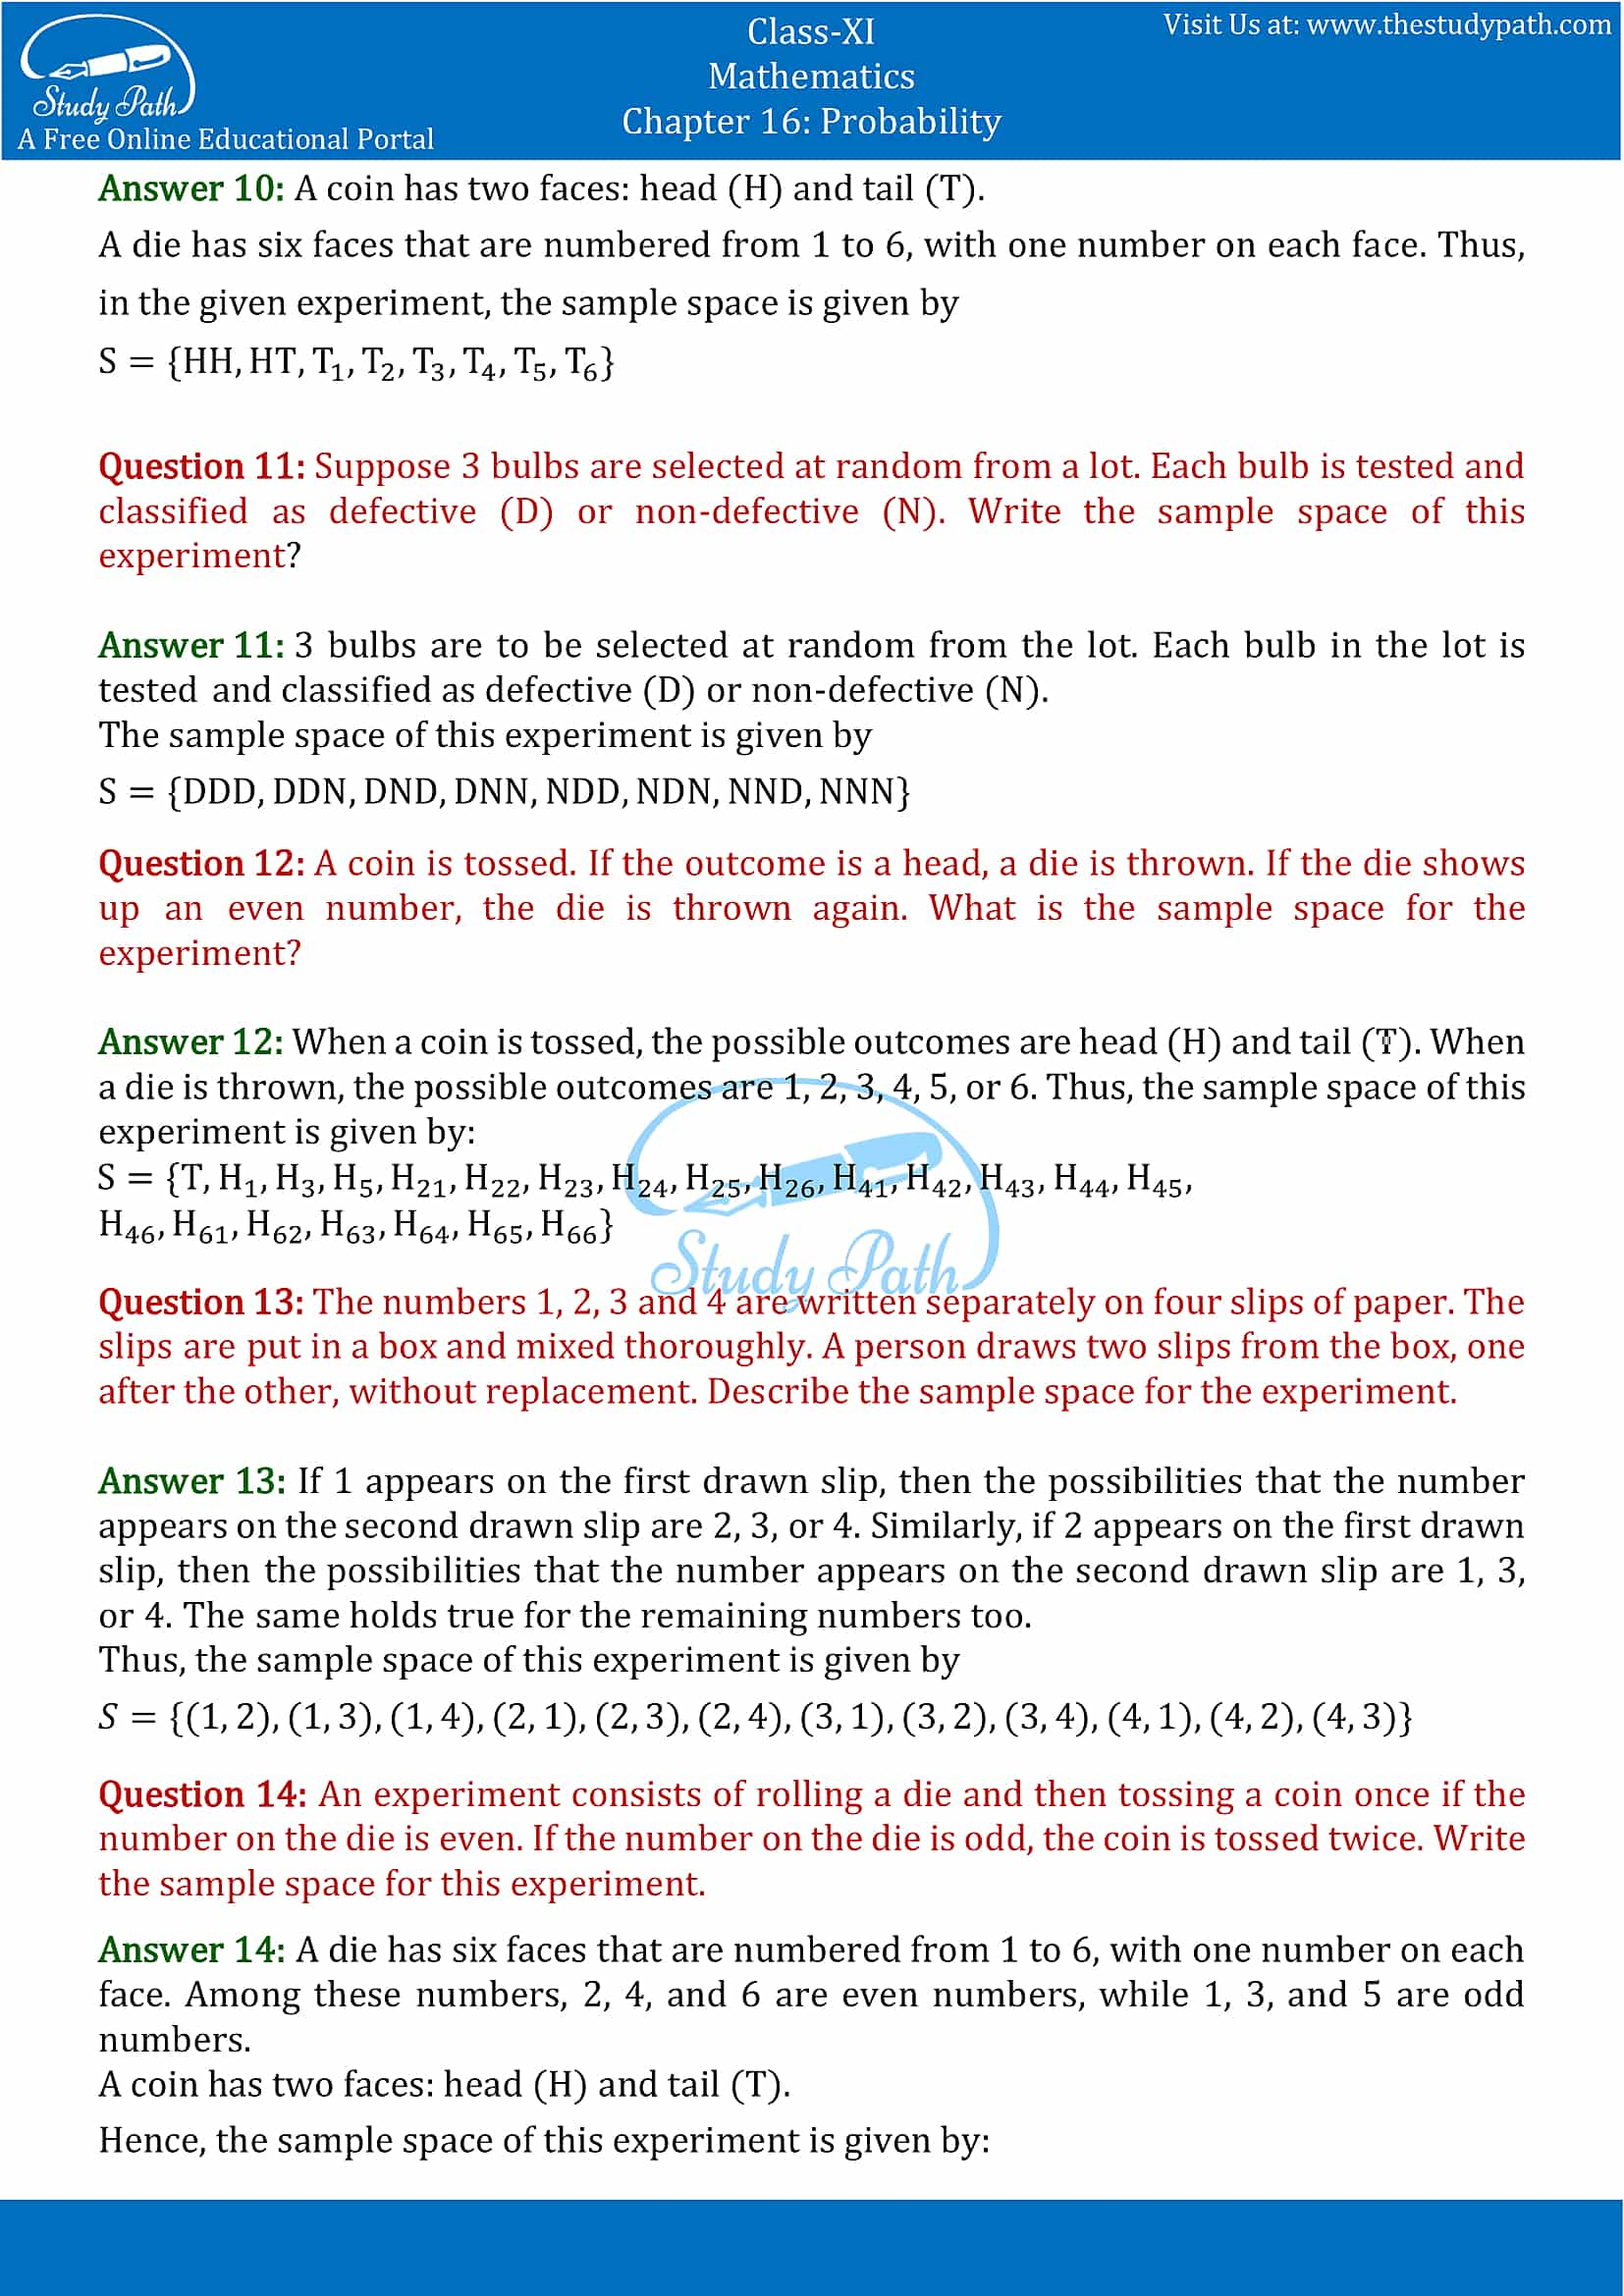 NCERT Solutions for Class 11 Maths chapter 16 Probability part-3